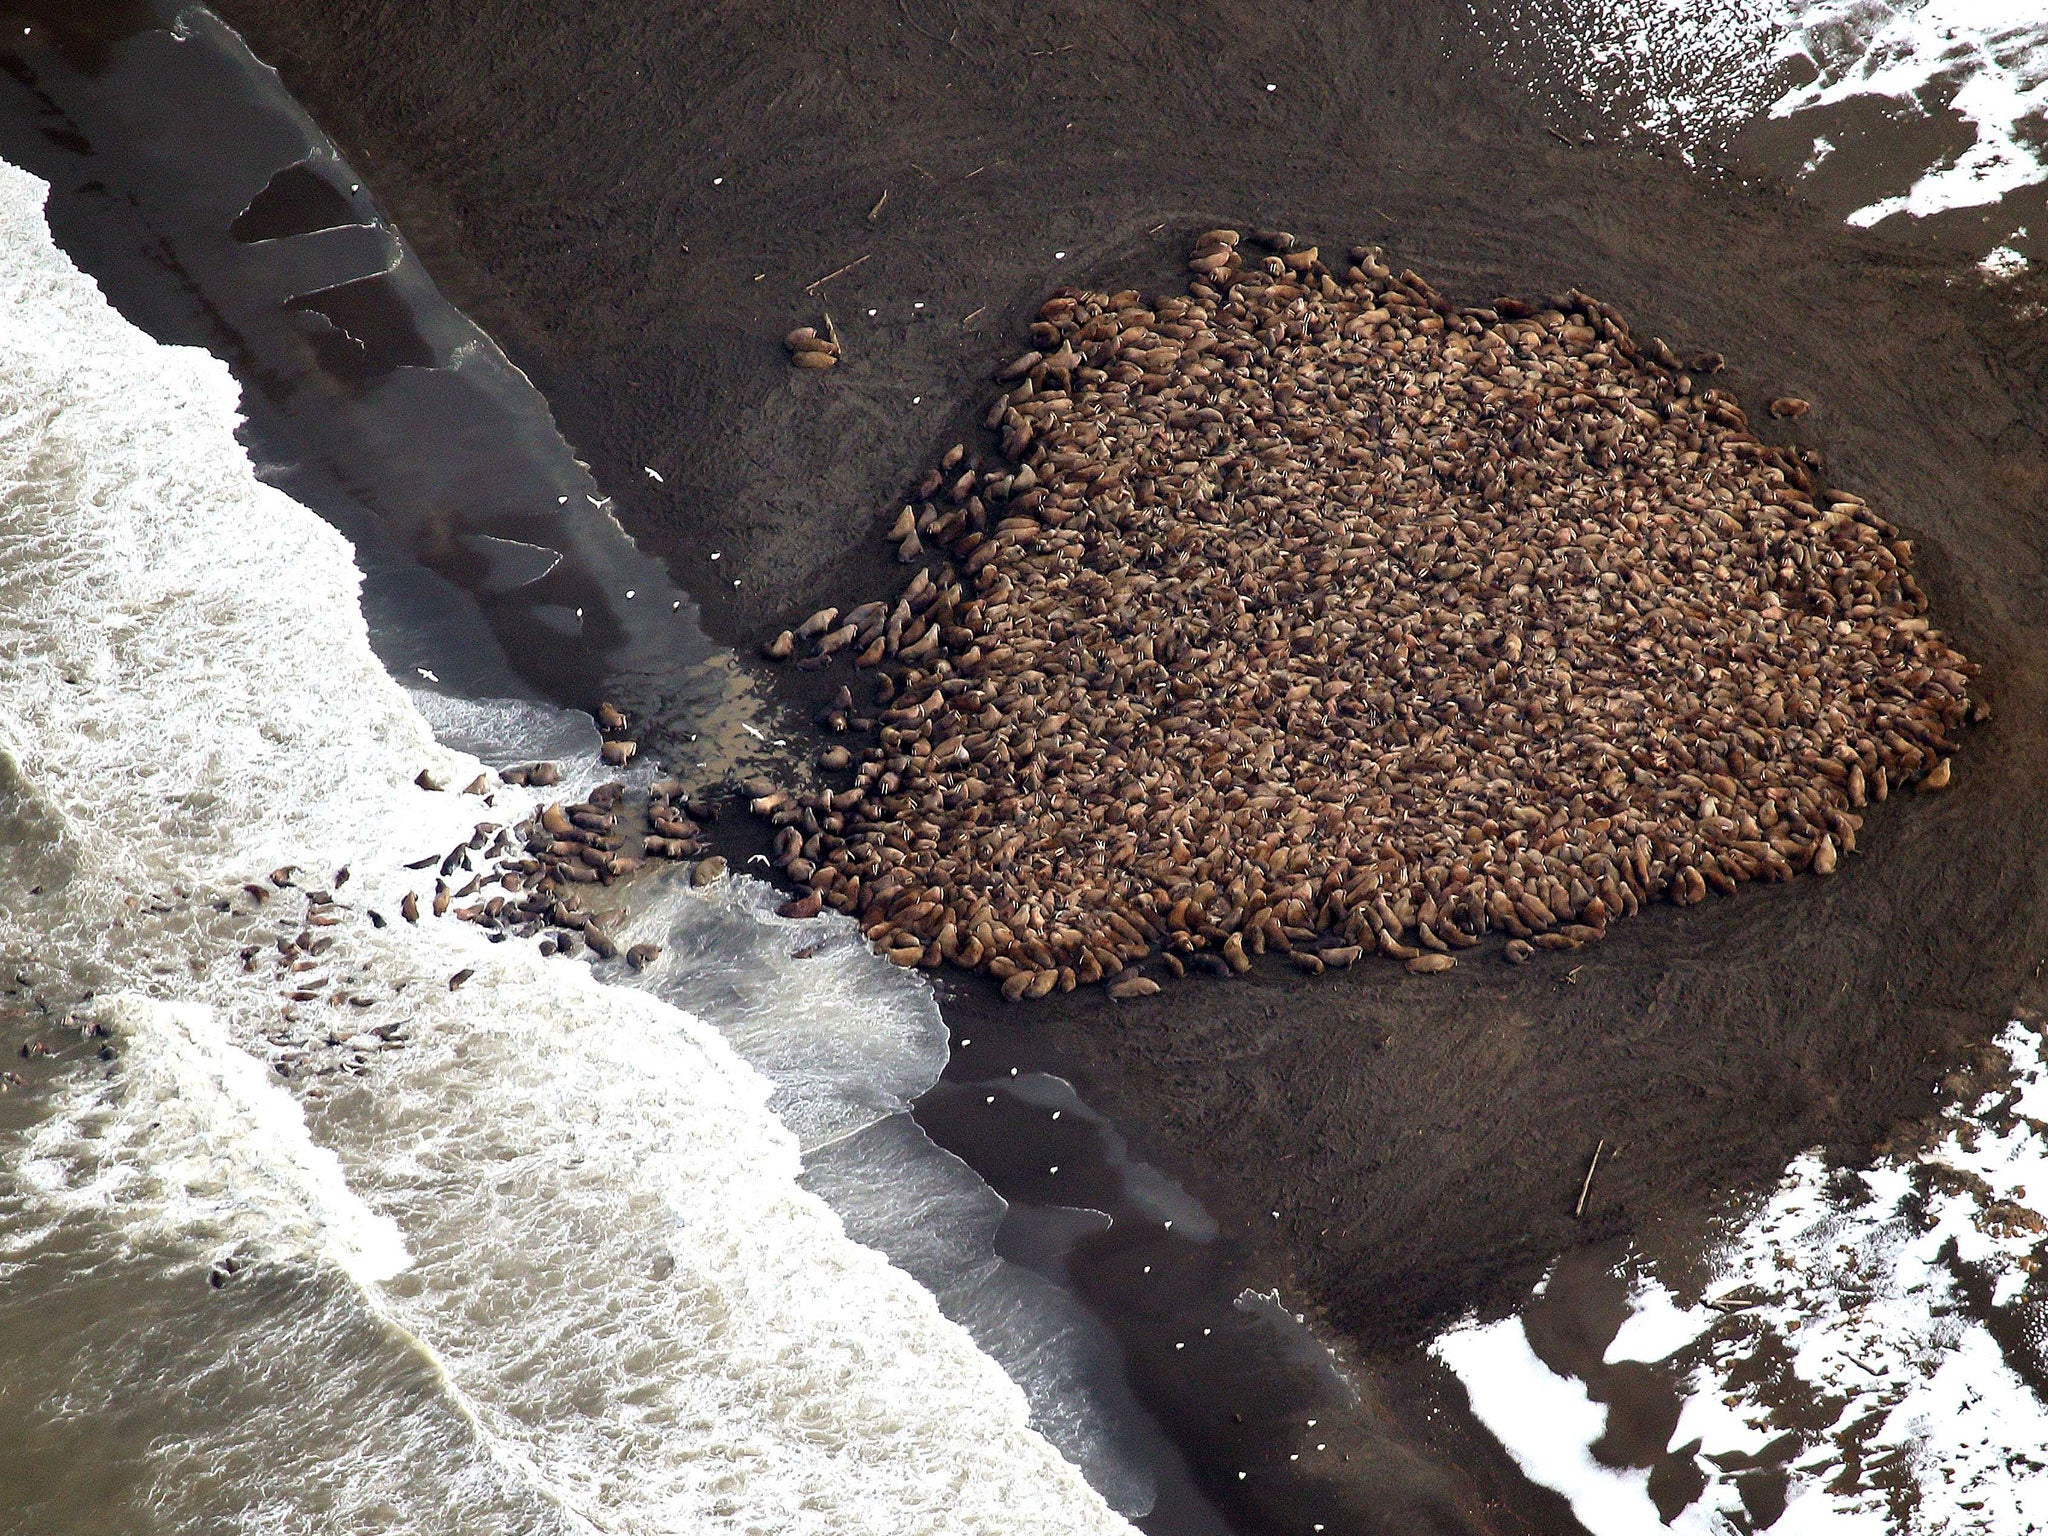 35,000 walrus gather on north-west Alaska beach 'for a rest' | The ...